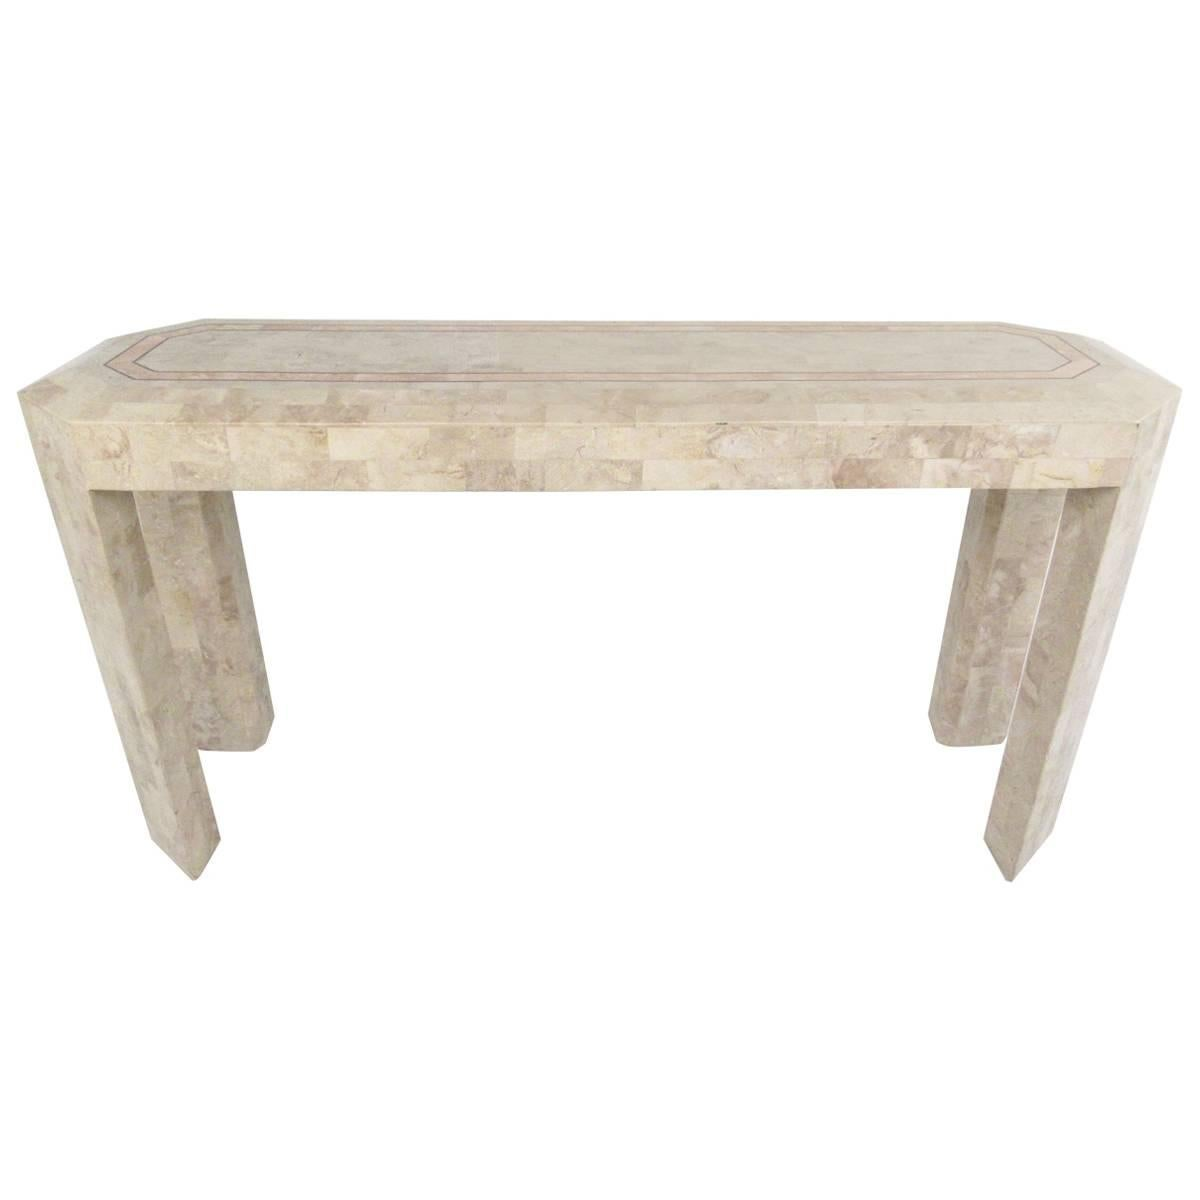 Tessellated Stone Console Table after Maitland Smith